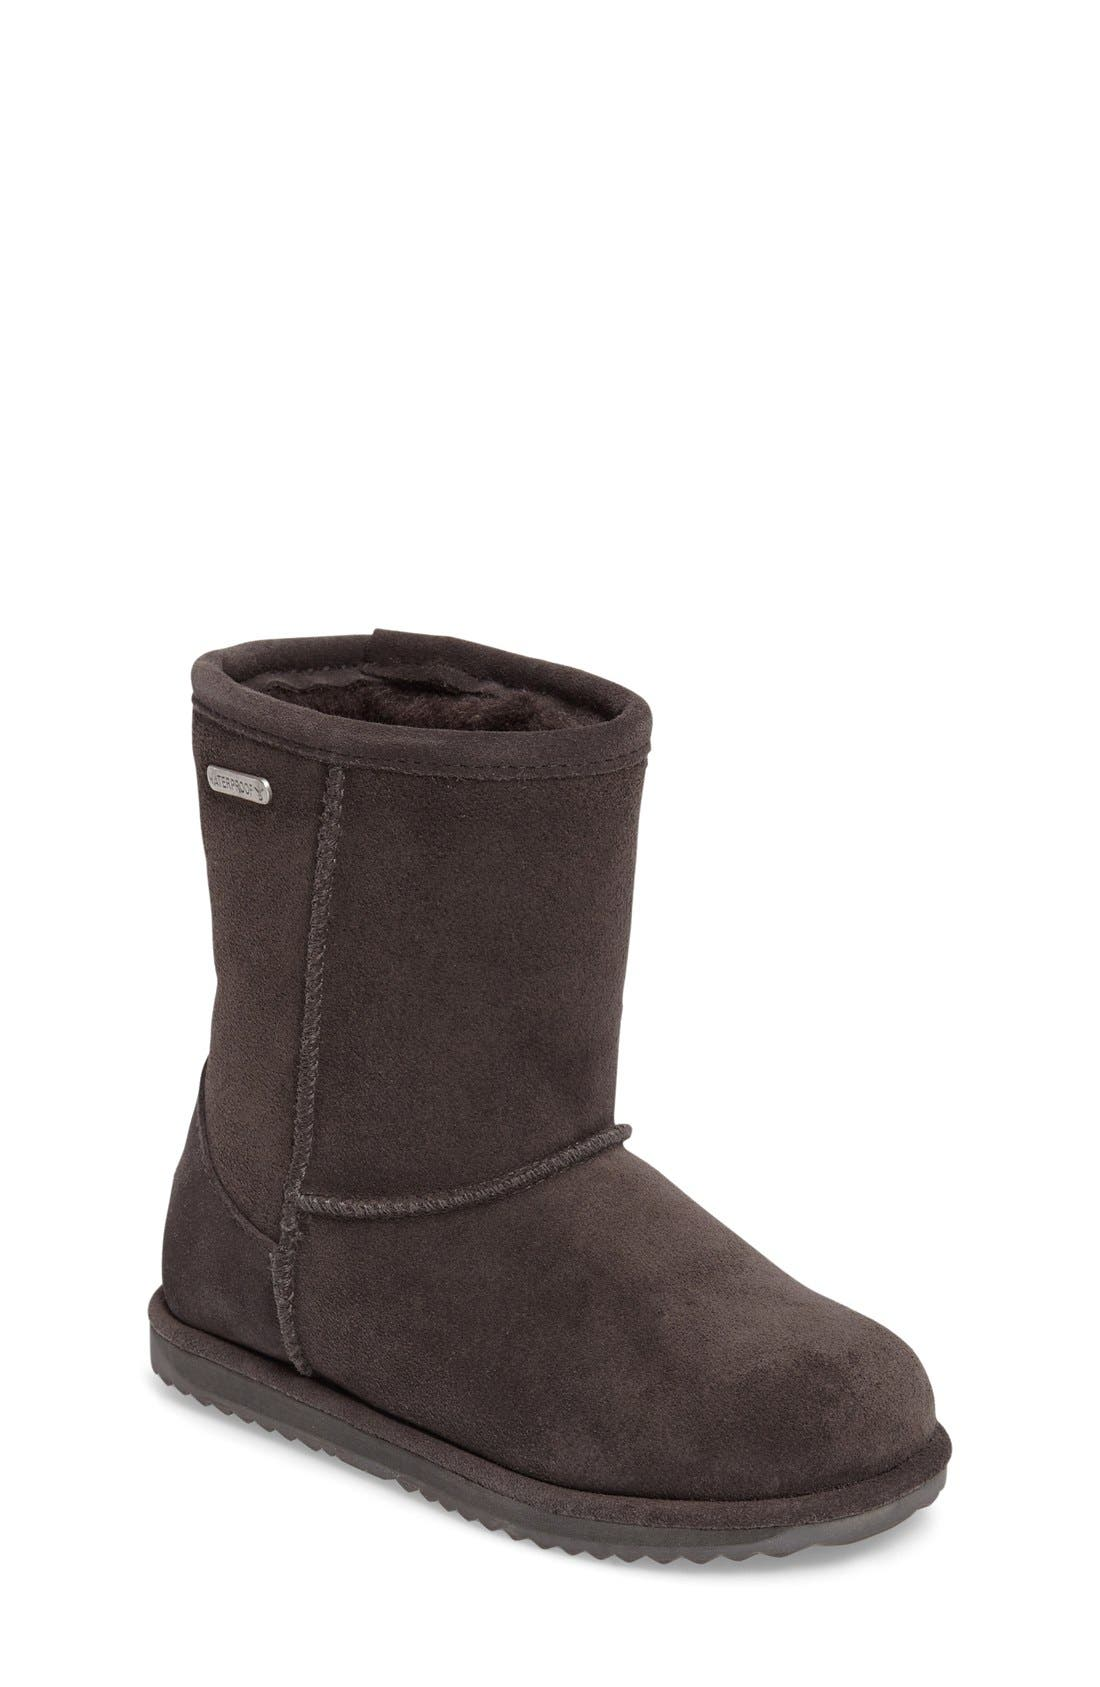 Brumby Waterproof Boot,                         Main,                         color, Charcoal Suede